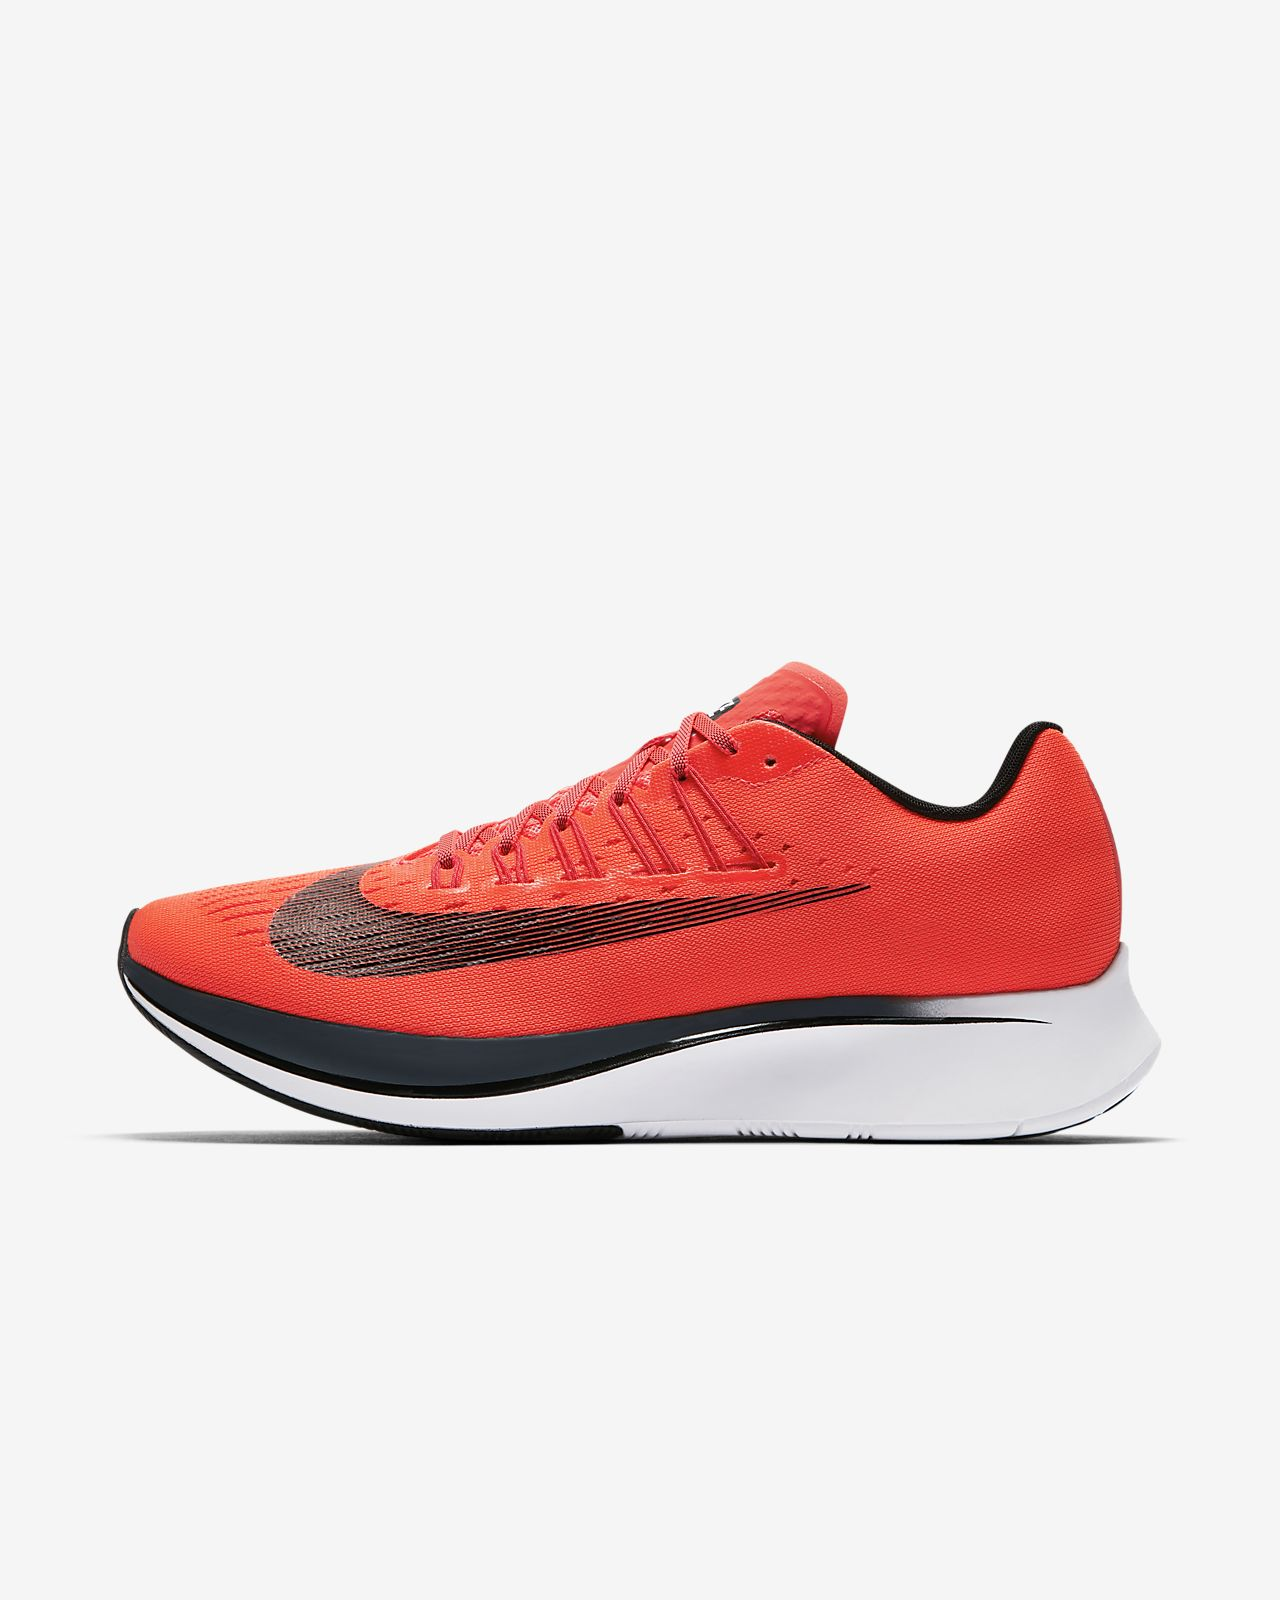 101c0a8dc4 Nike Zoom Fly Men s Running Shoe. Nike.com CA